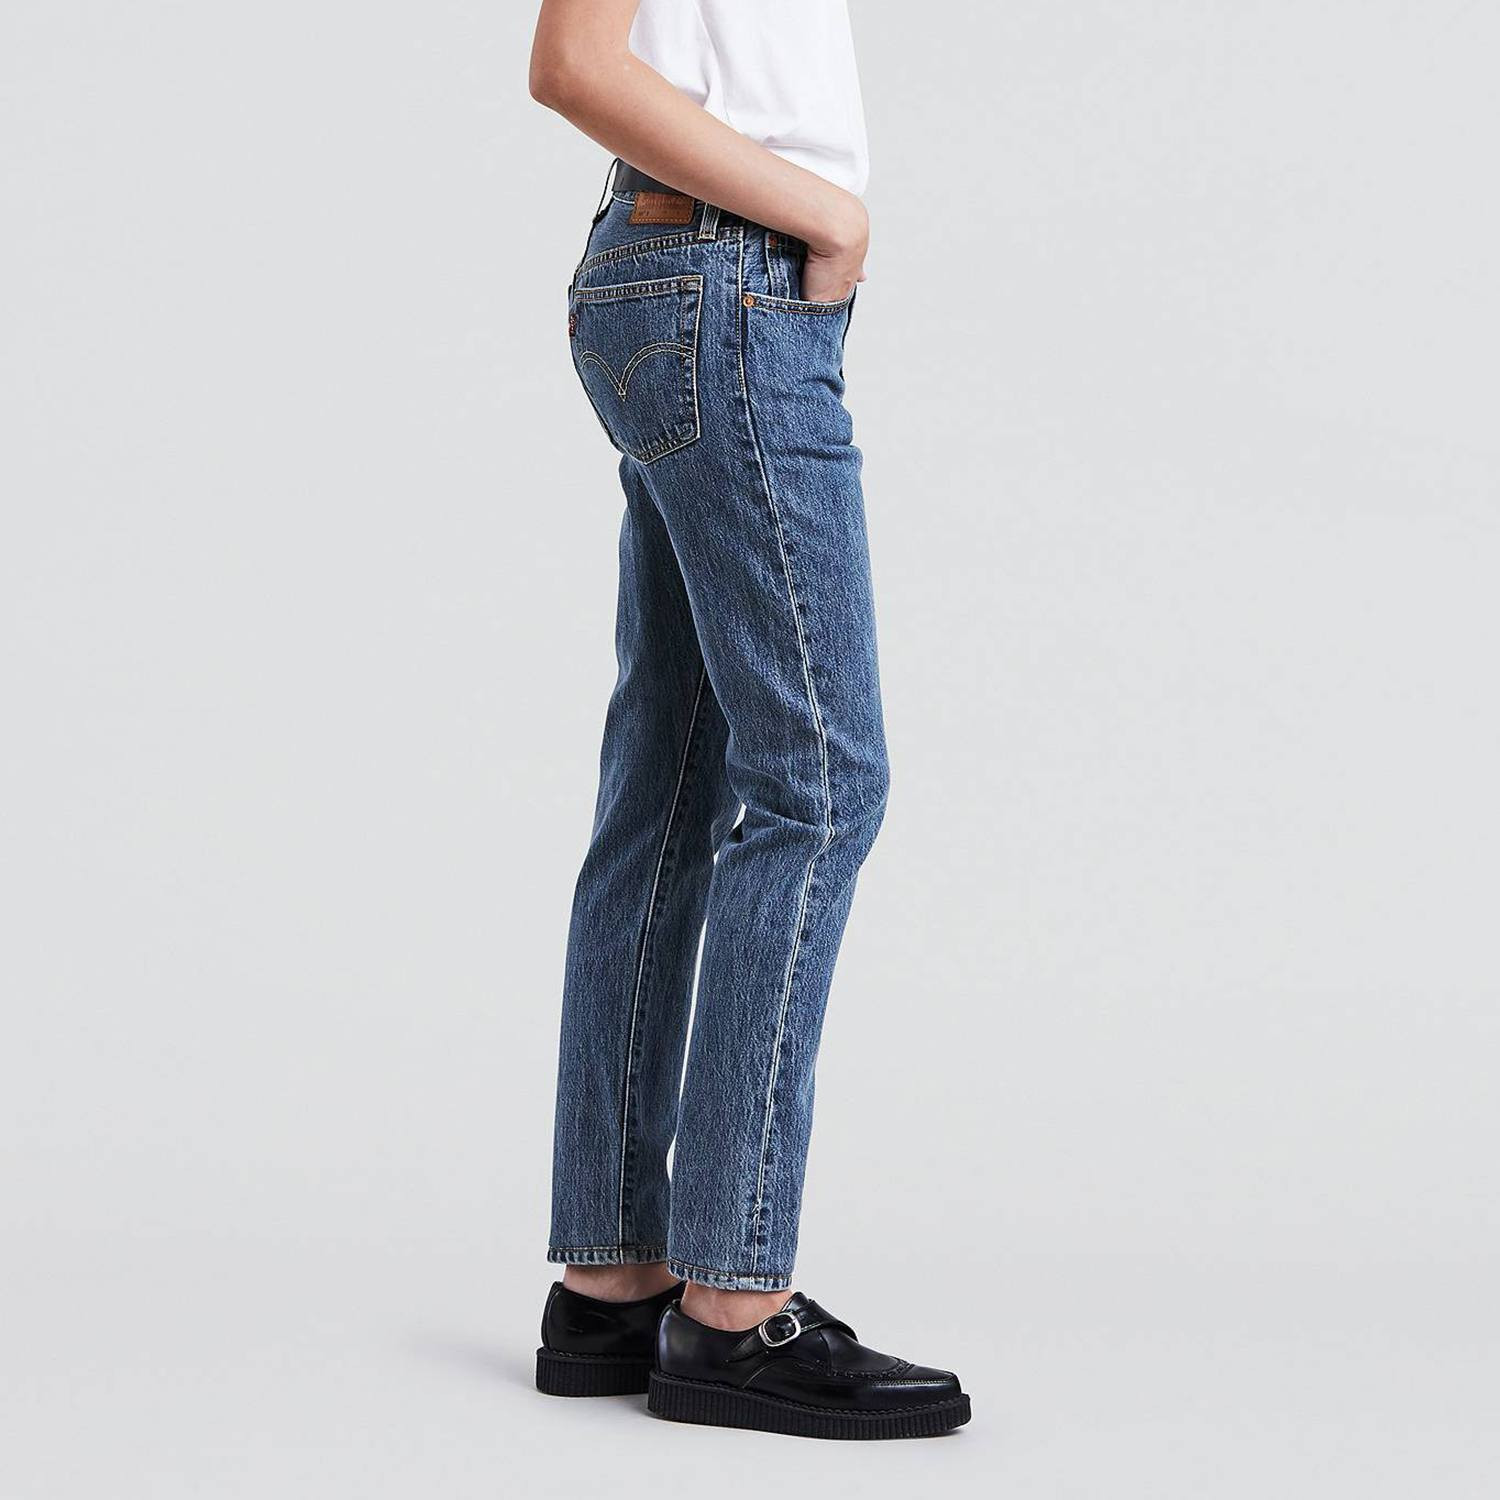 Levis 501 Skinny Rolling Dice